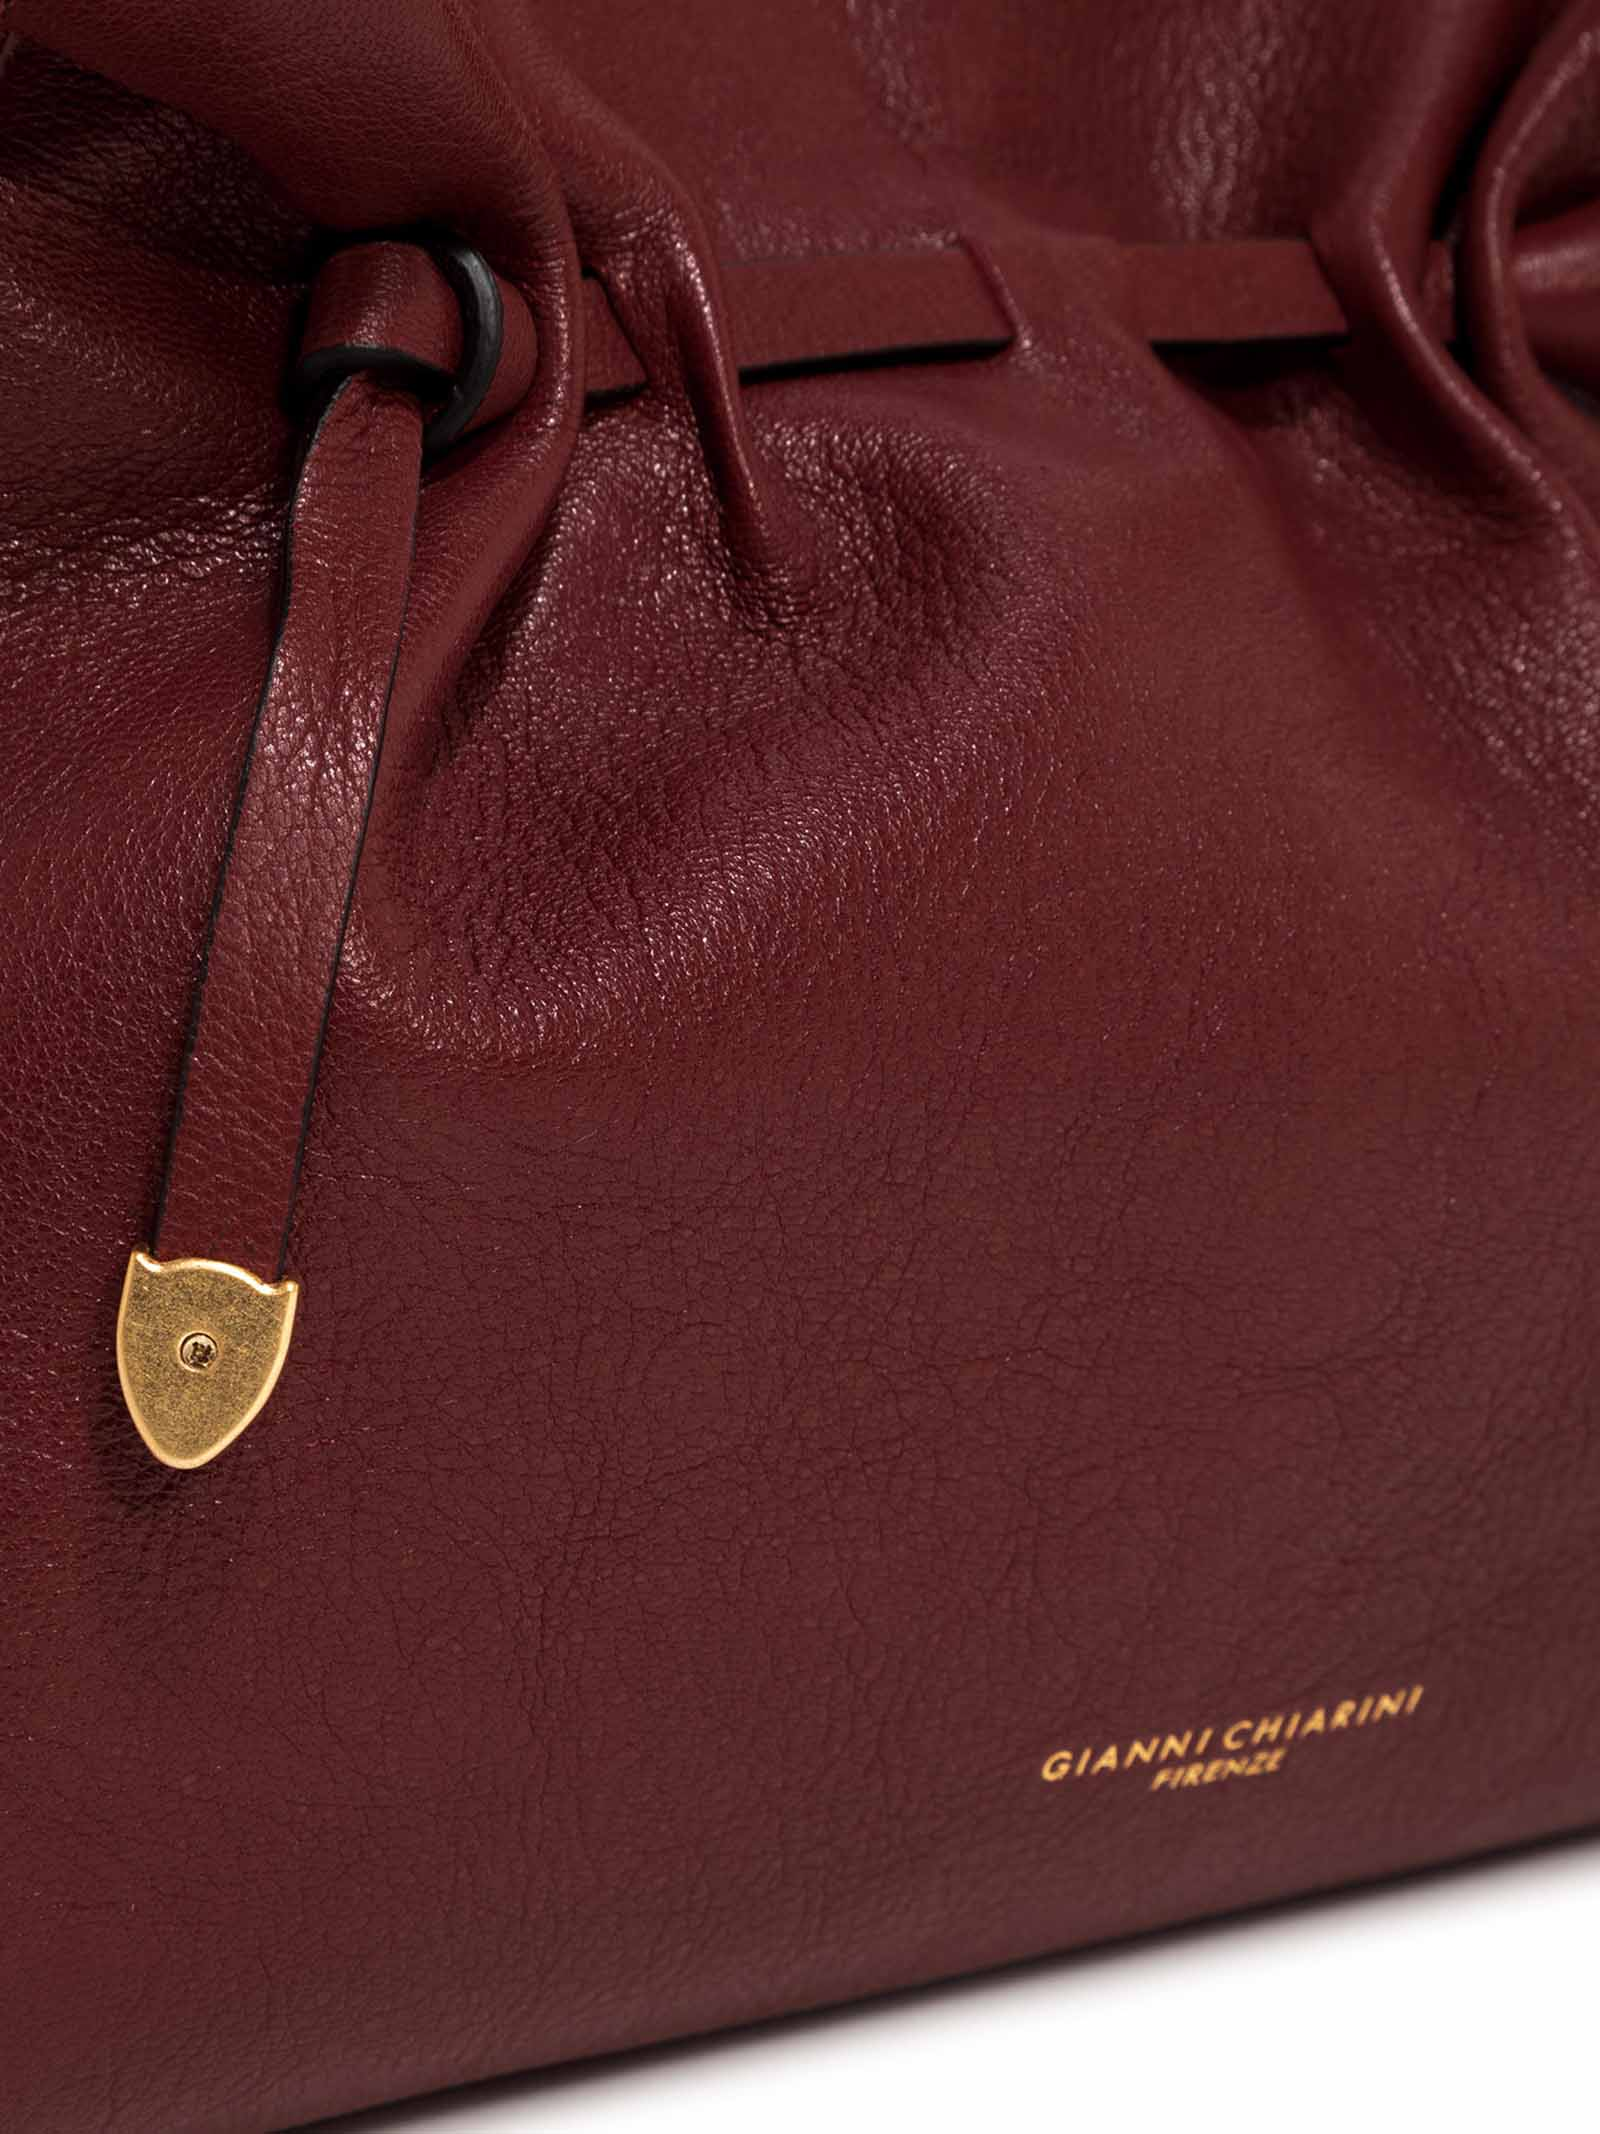 Women's Shoulder Bag Dollie In Bordeaux Patent Leather Coulisse Closure And Handle In Braided Rope In Color Matched With Adjustable And Detachable Leather Cross-body Strap. Gianni Chiarini   Bags and backpacks   BS88016731